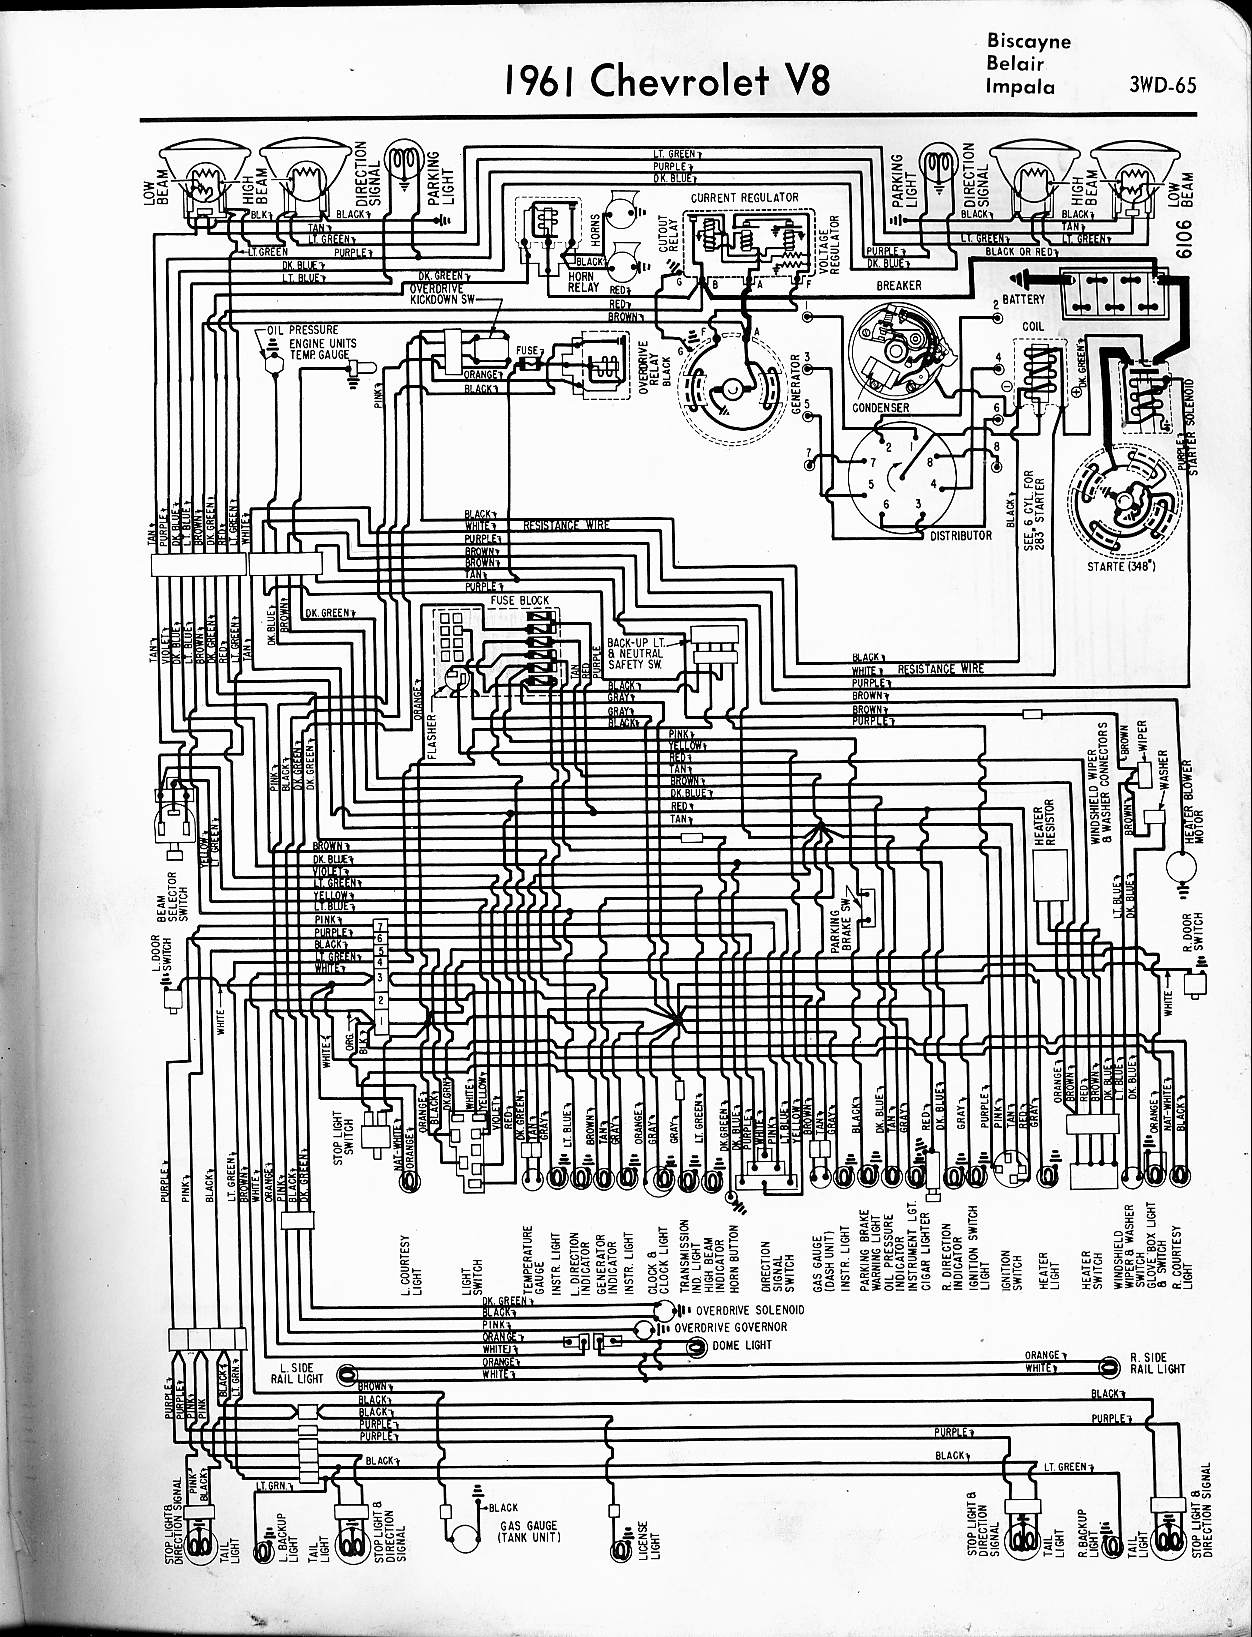 1956 Chevy Horn Wiring | Digital Resources on